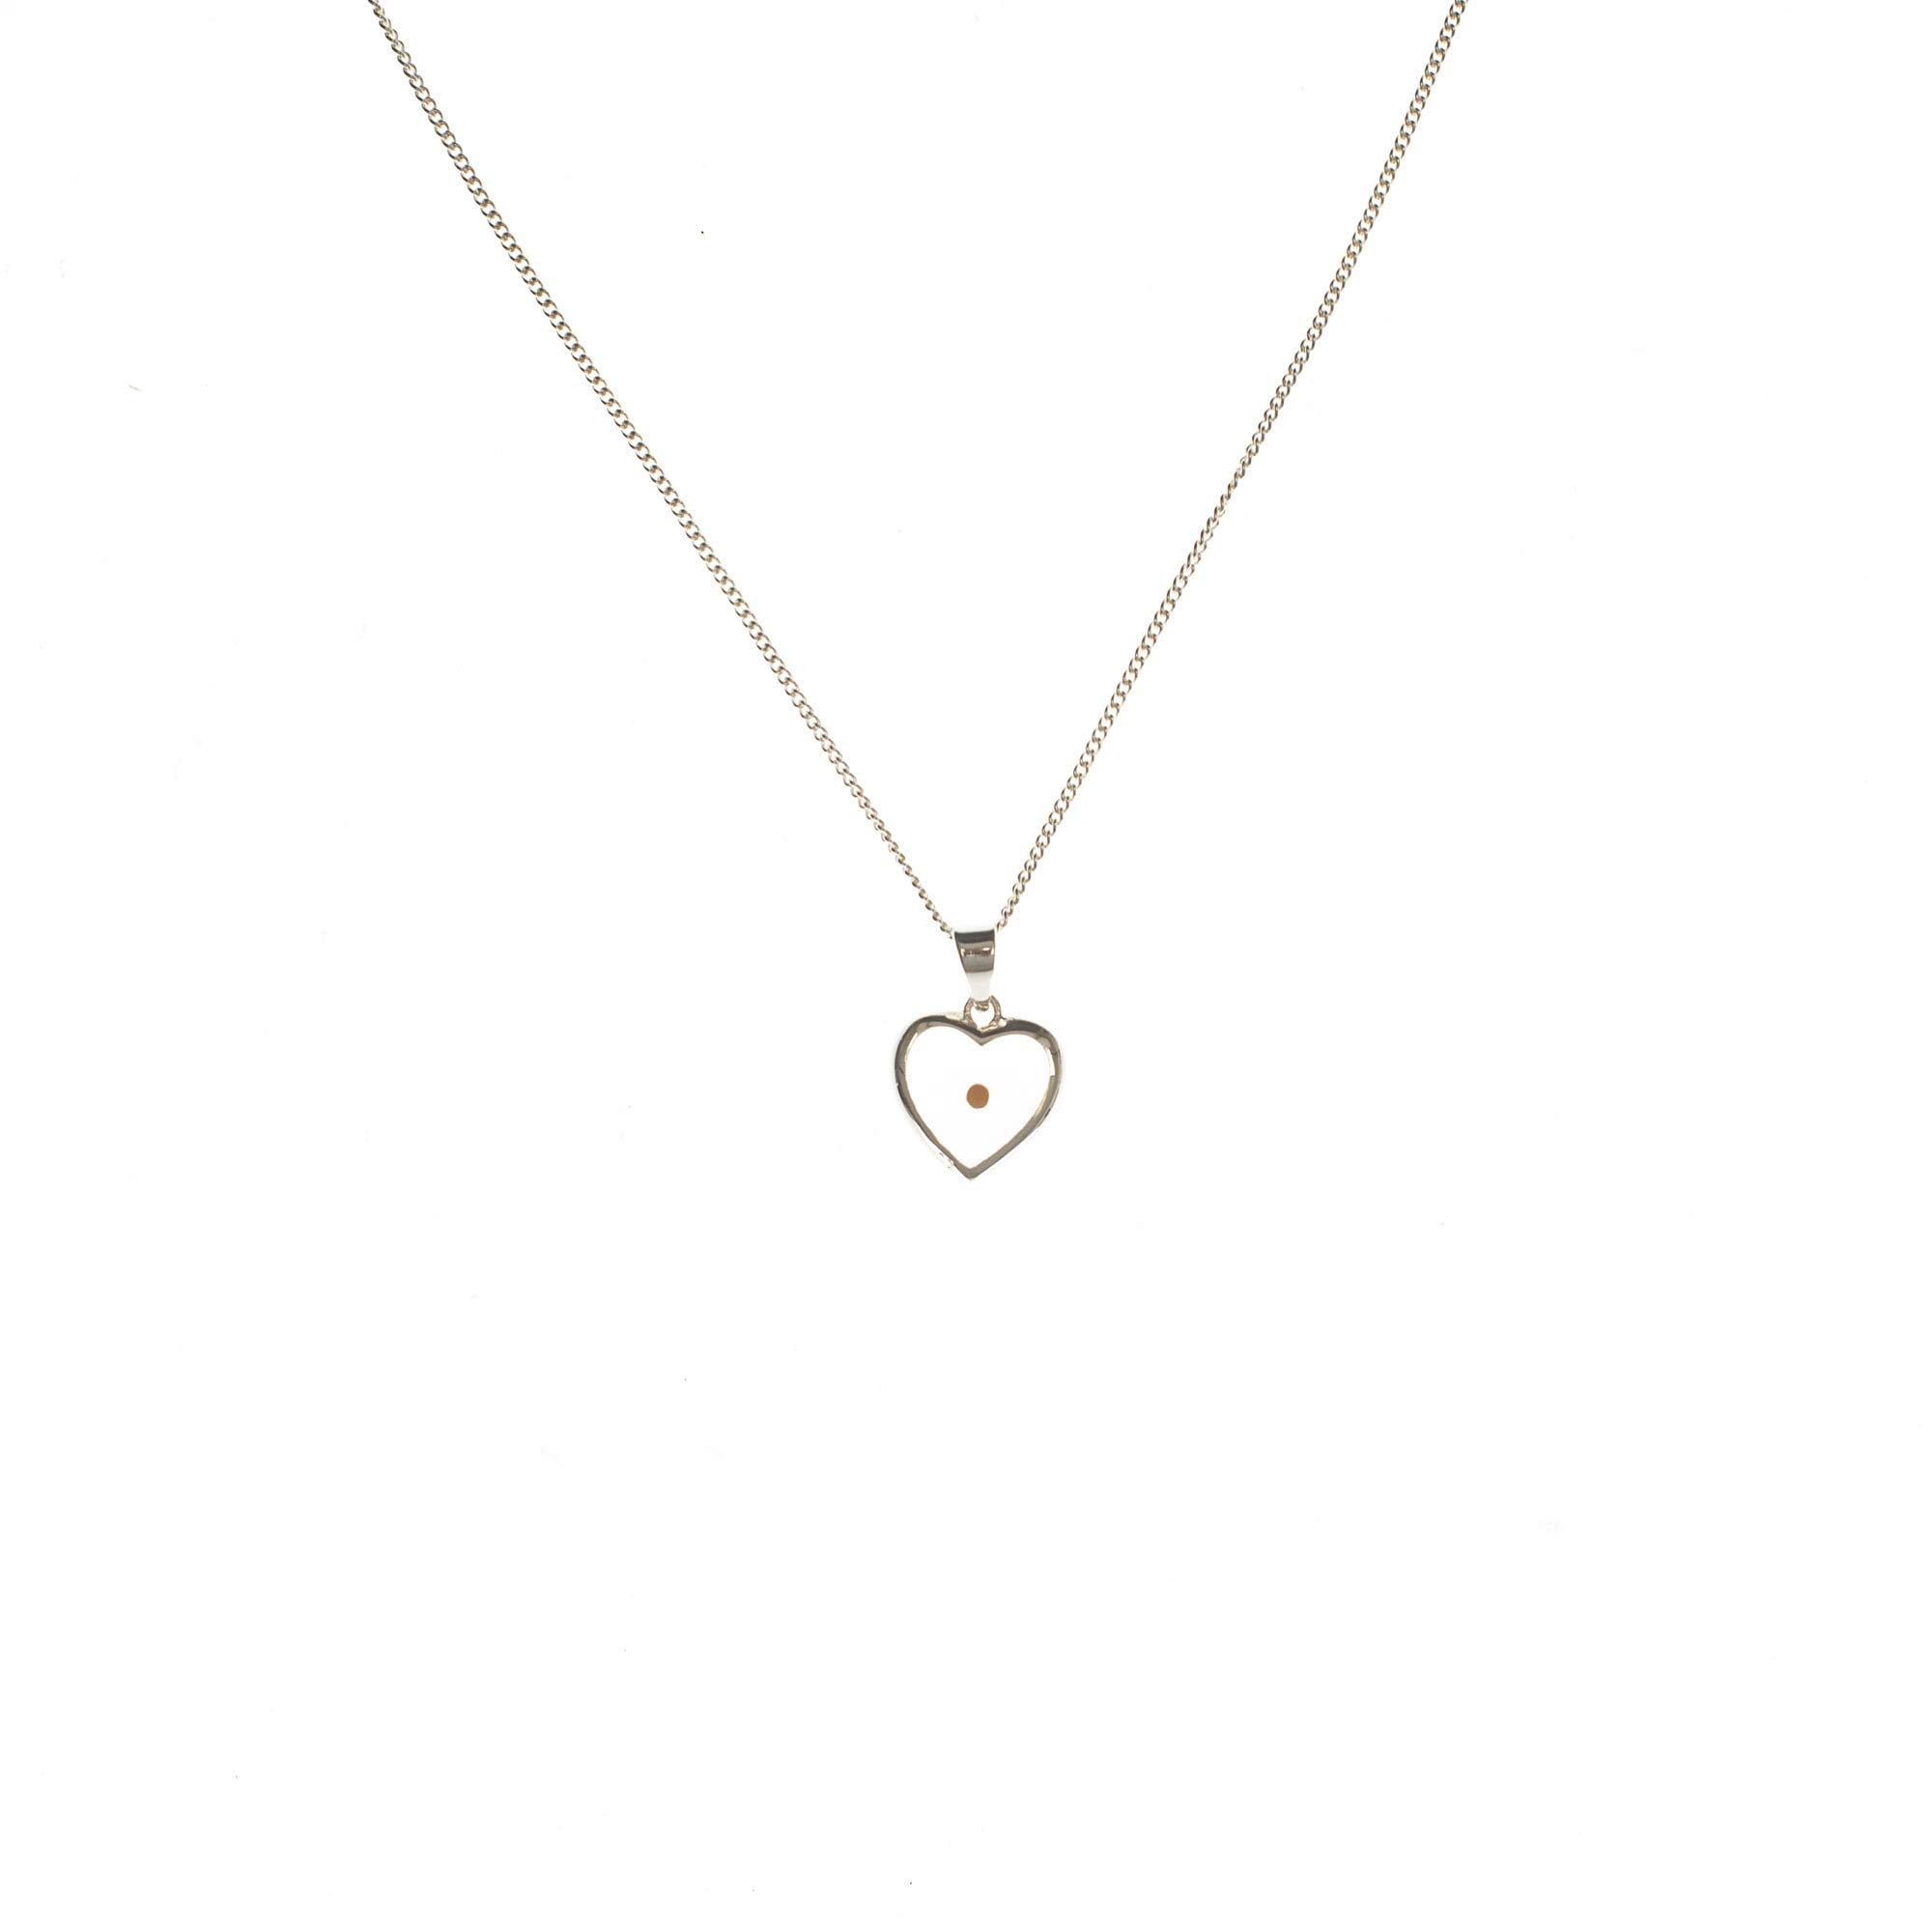 Dicksons The Mustard Seed Matthew 17:20 Heart Silver Plated Pendant Necklace - 18 inch Chain by Dicksons